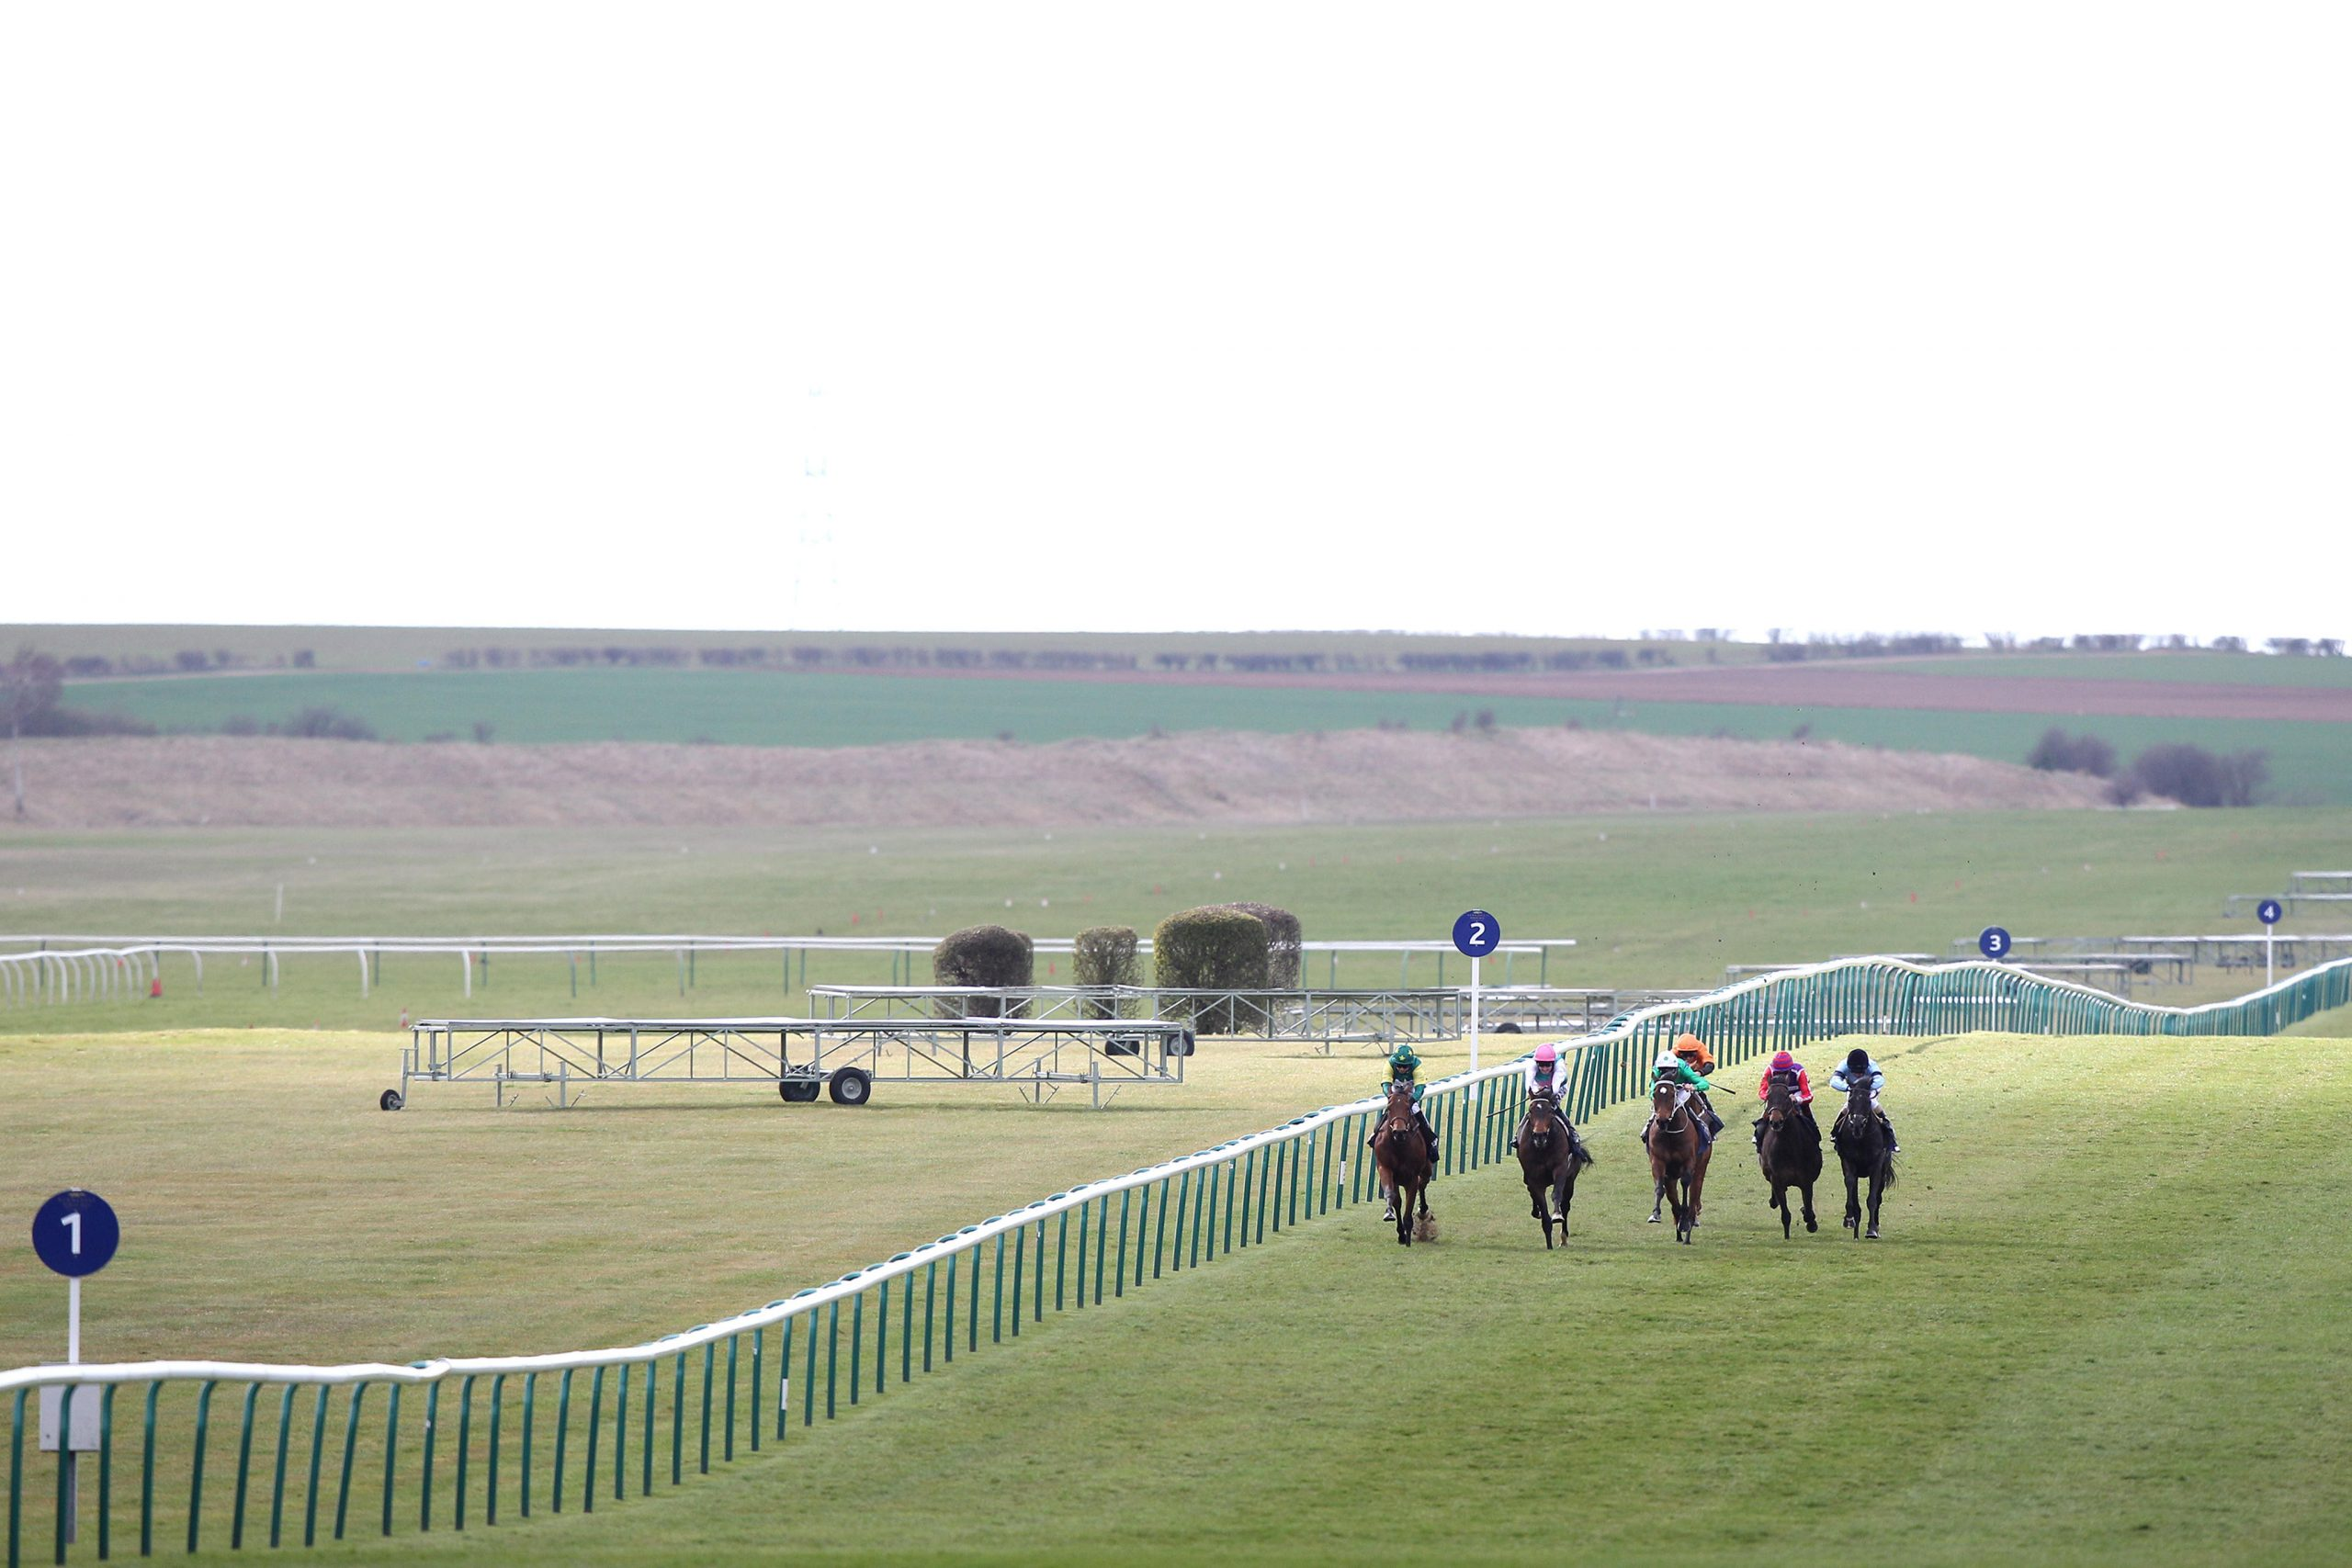 Horse Racing - 2013 Craven Meeting - Day Two - Newmarket Racecourse ITV